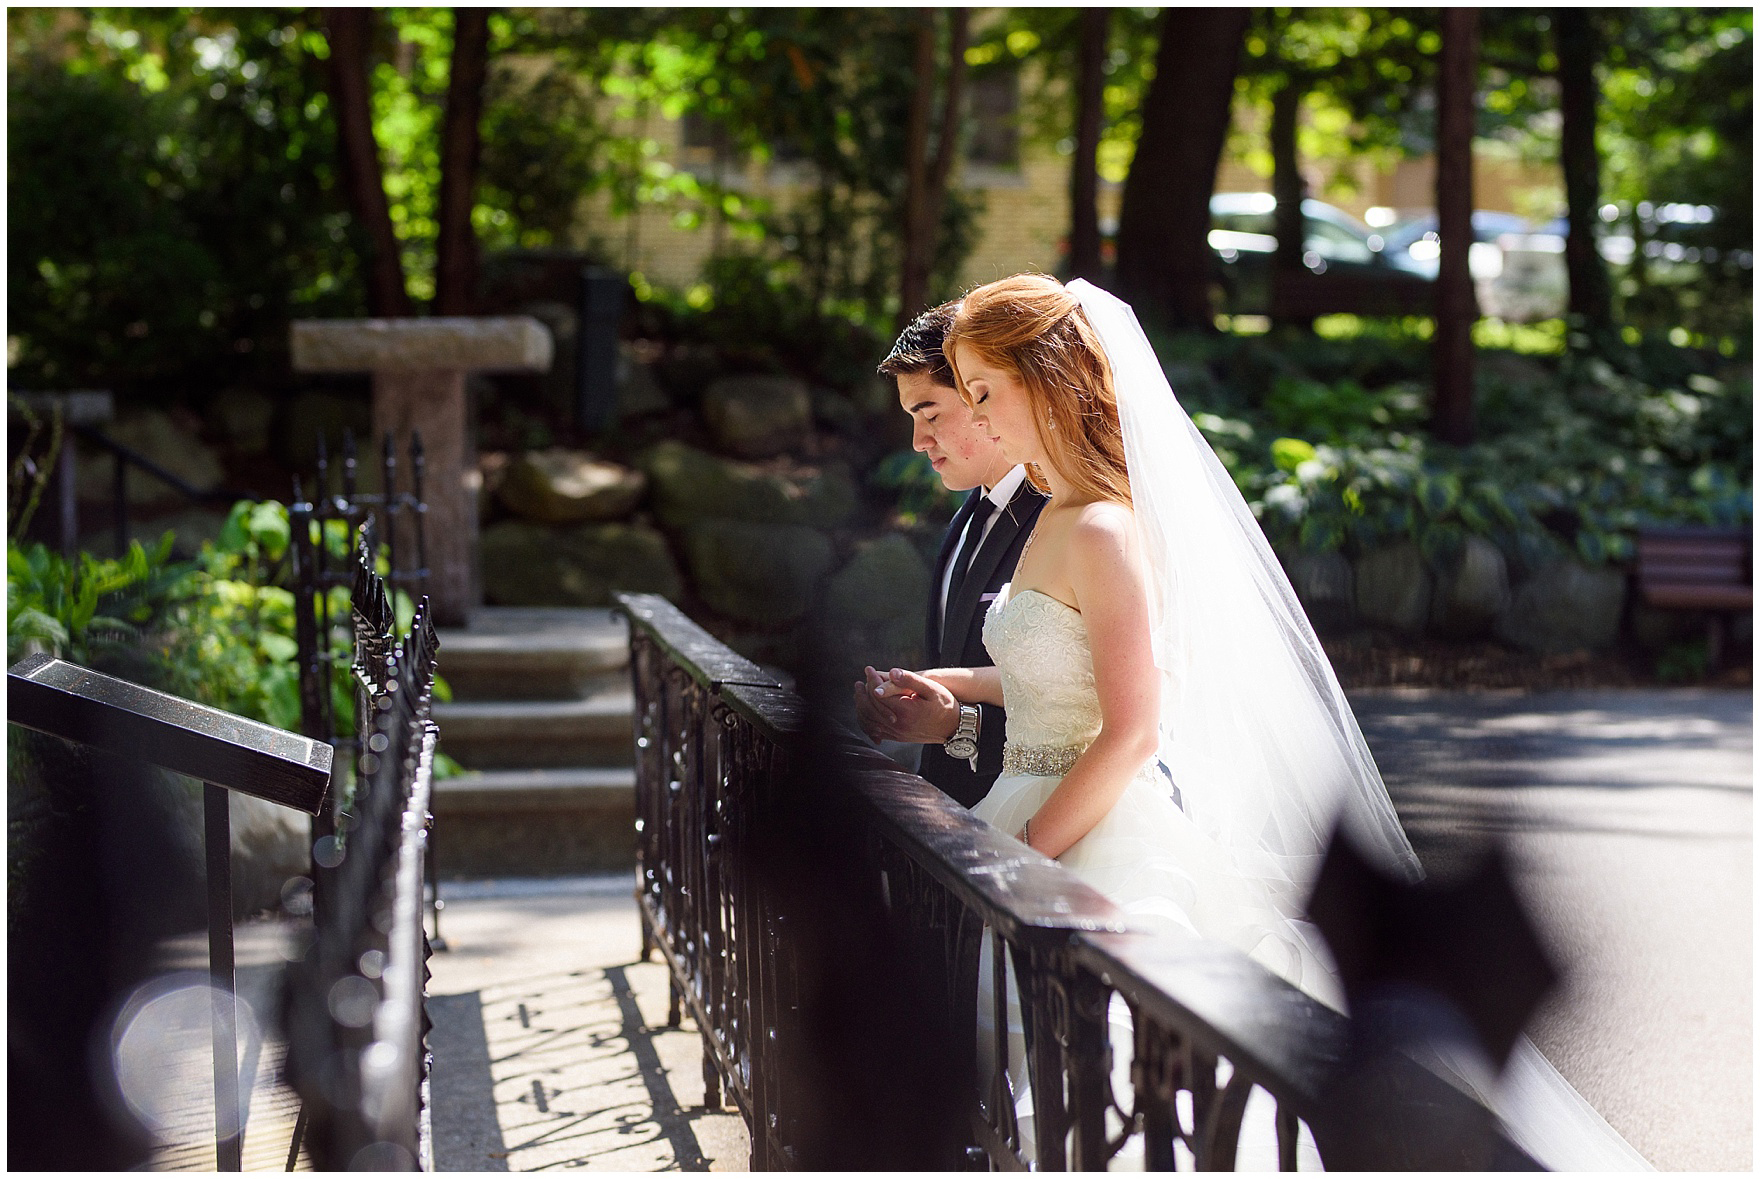 The bride and groom pray at the grotto during a University of Notre Dame wedding.